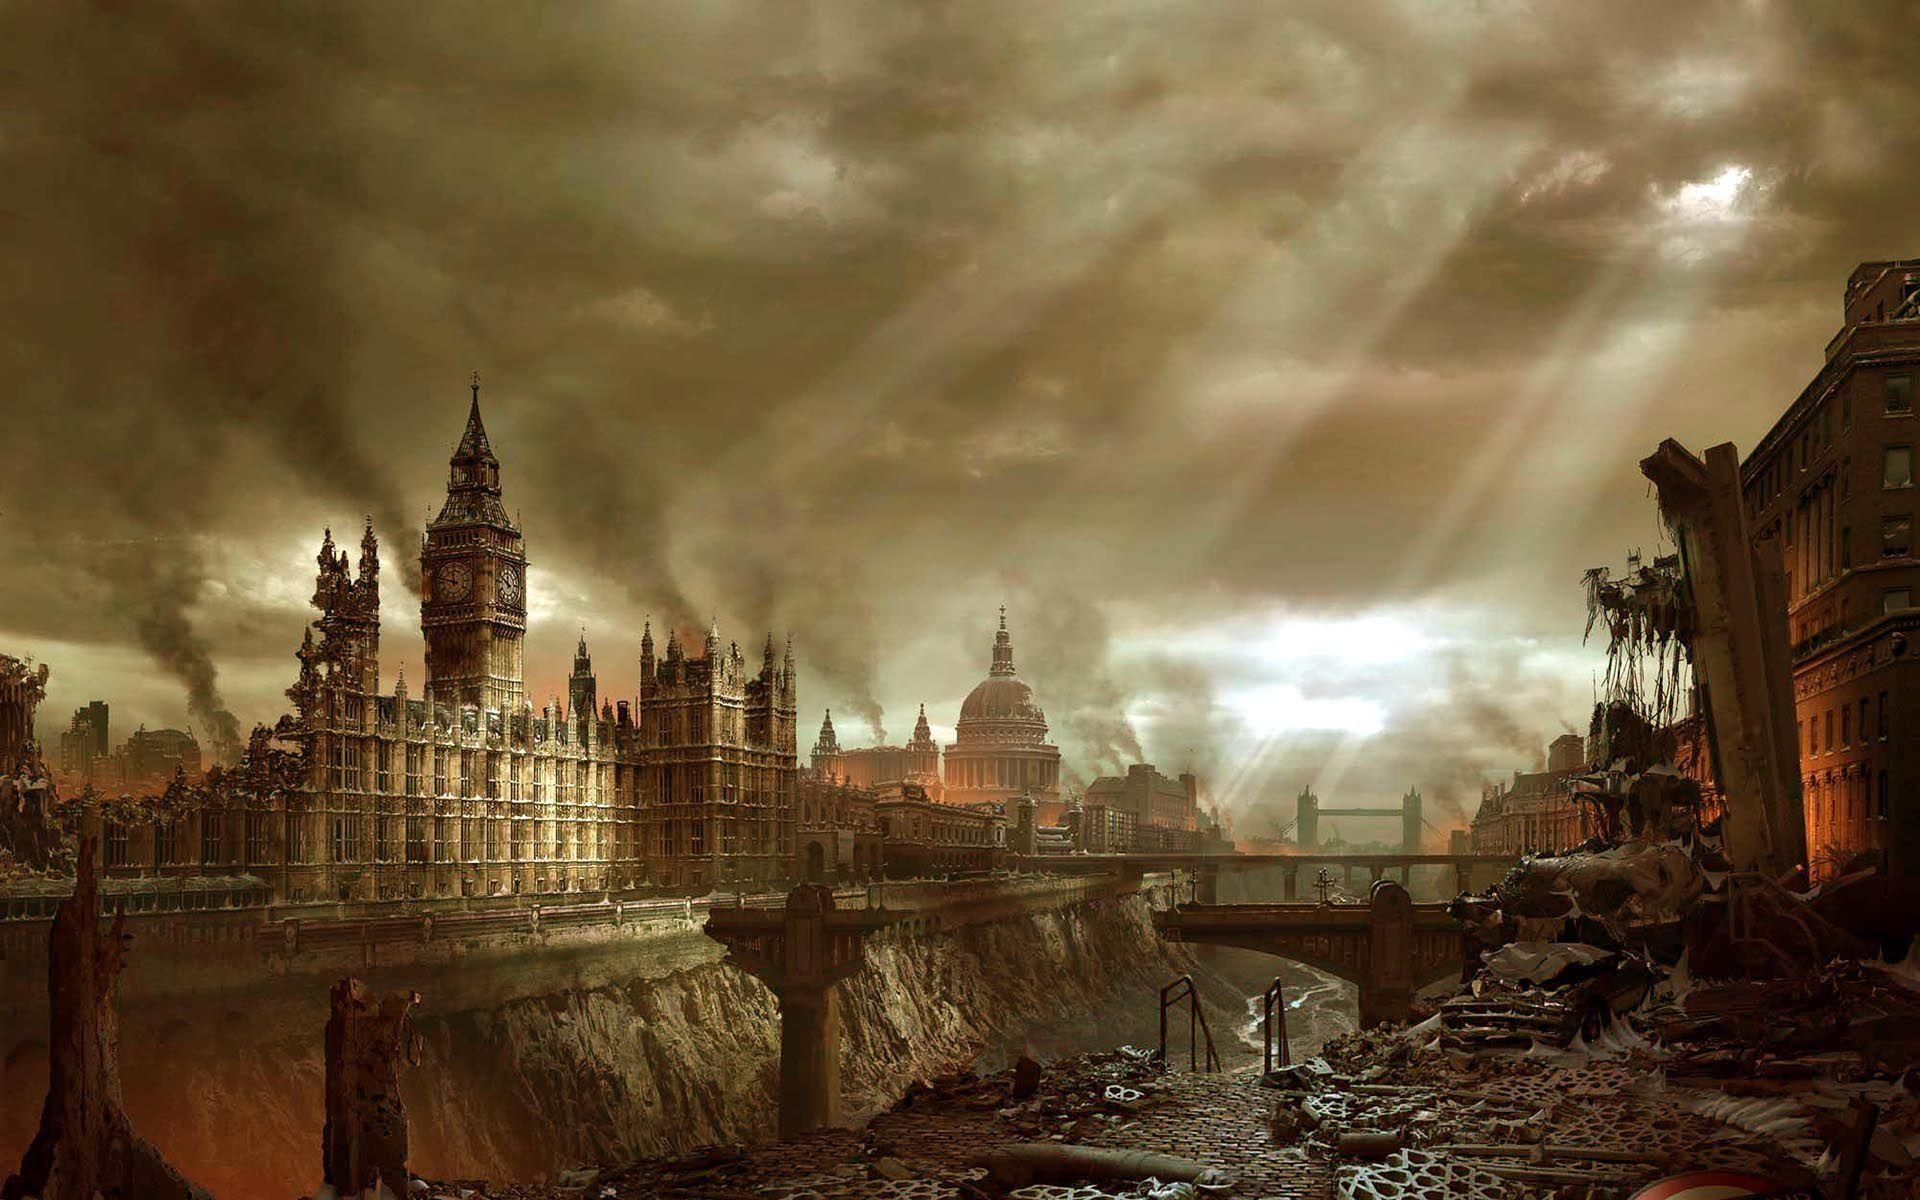 Post Apocalyptic London wallpaper - 590192